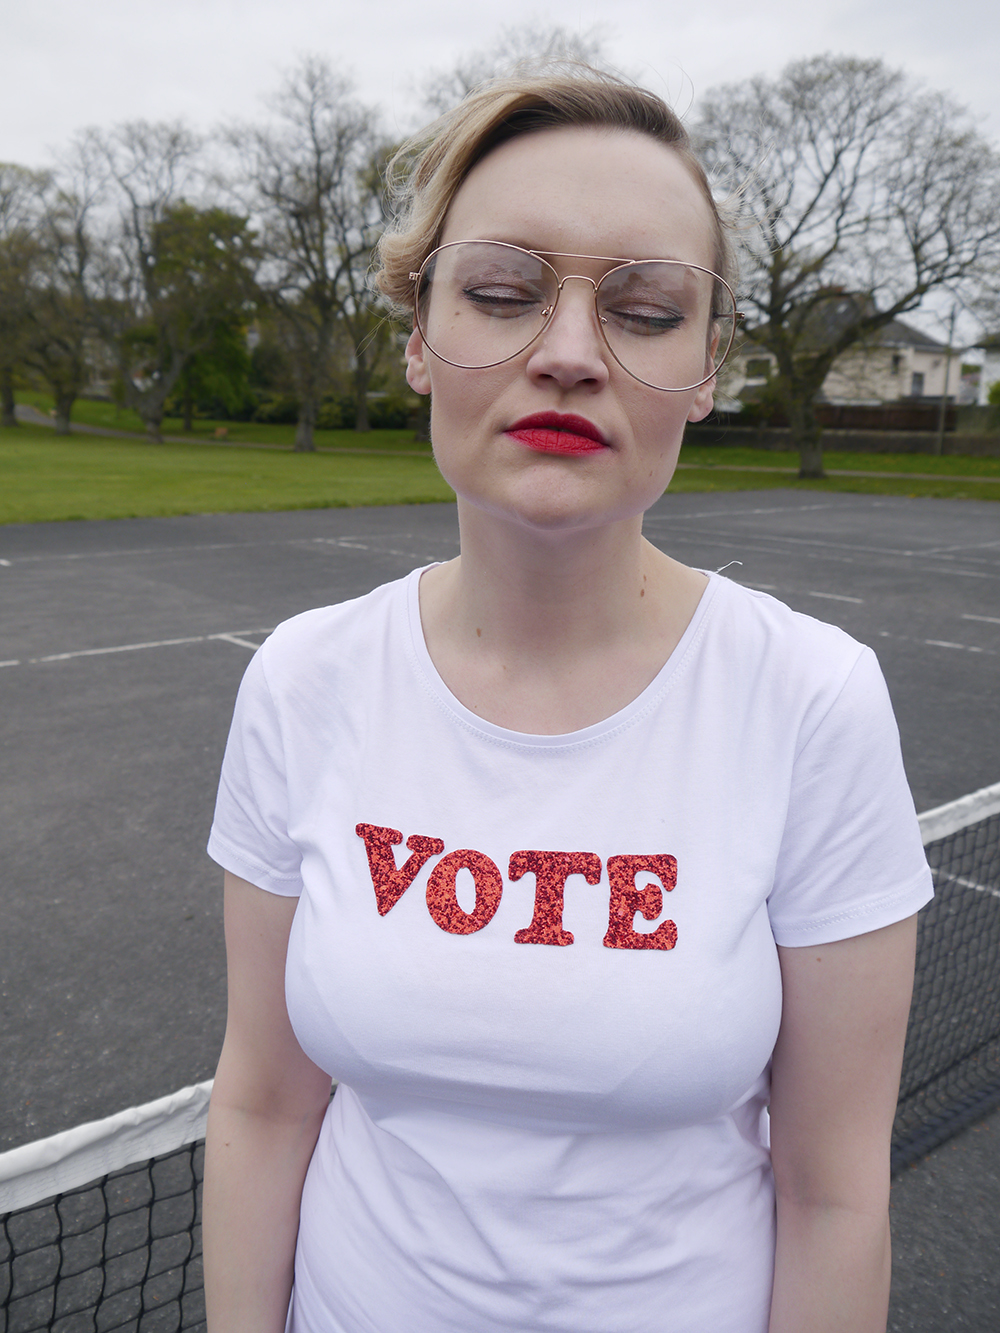 vote for Pedro, Napolean Dynamite dance routine, Unlikely Style Icon, Napolean Dynamite costume